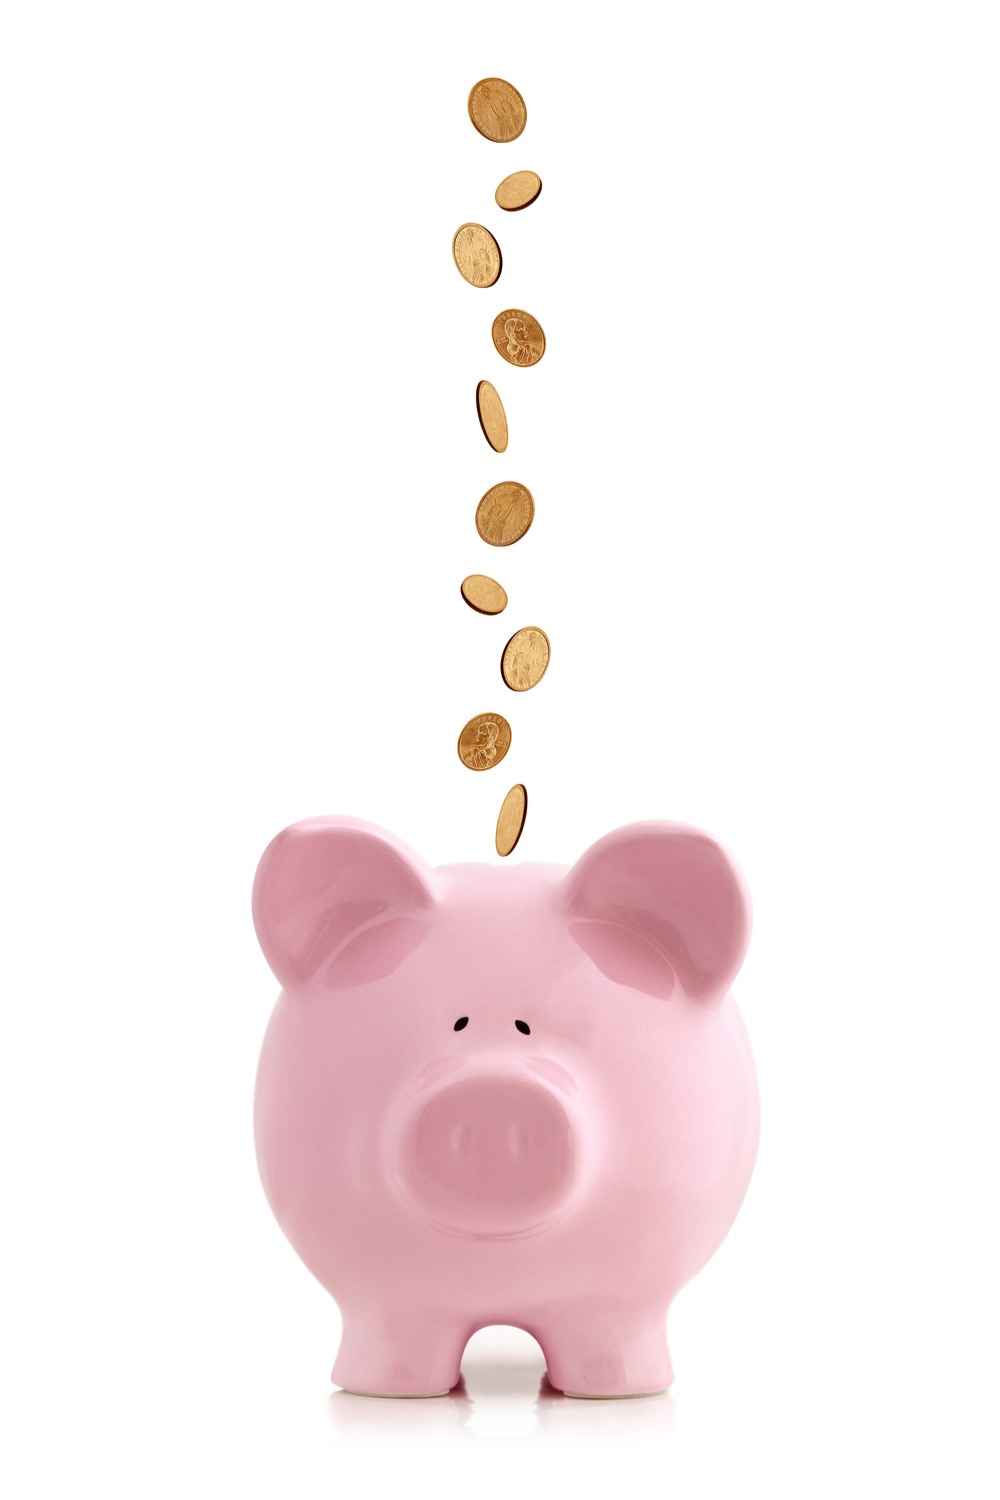 A pink piggy bank with lucky gold coins dropping into it.